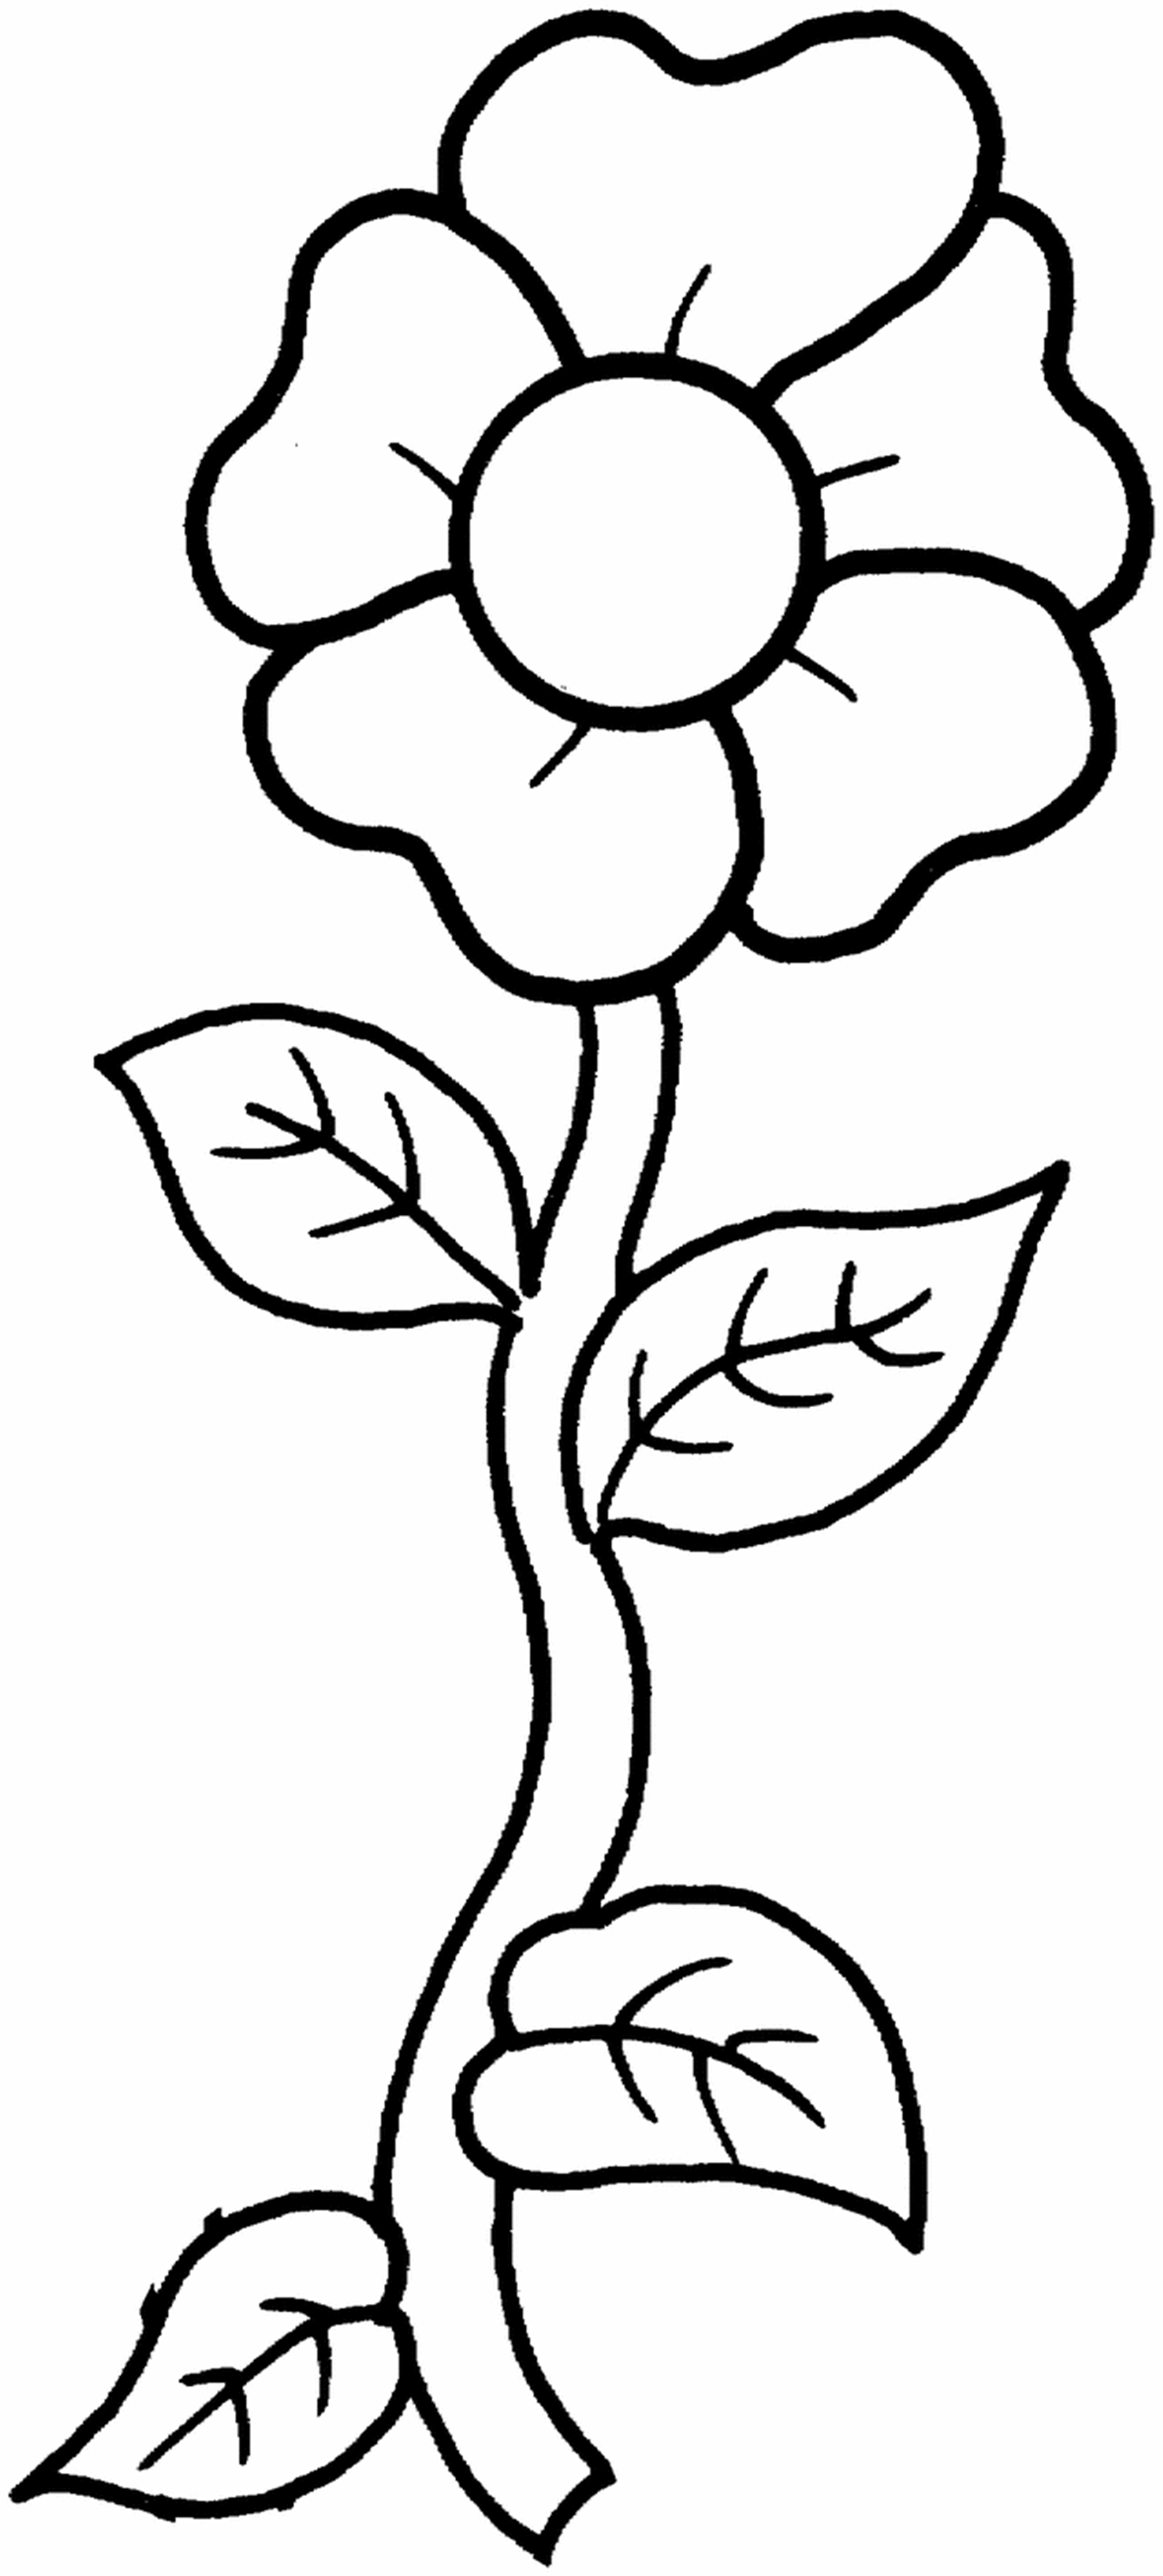 free printable flowers to color free printable flower coloring pages for kids best printable to color flowers free